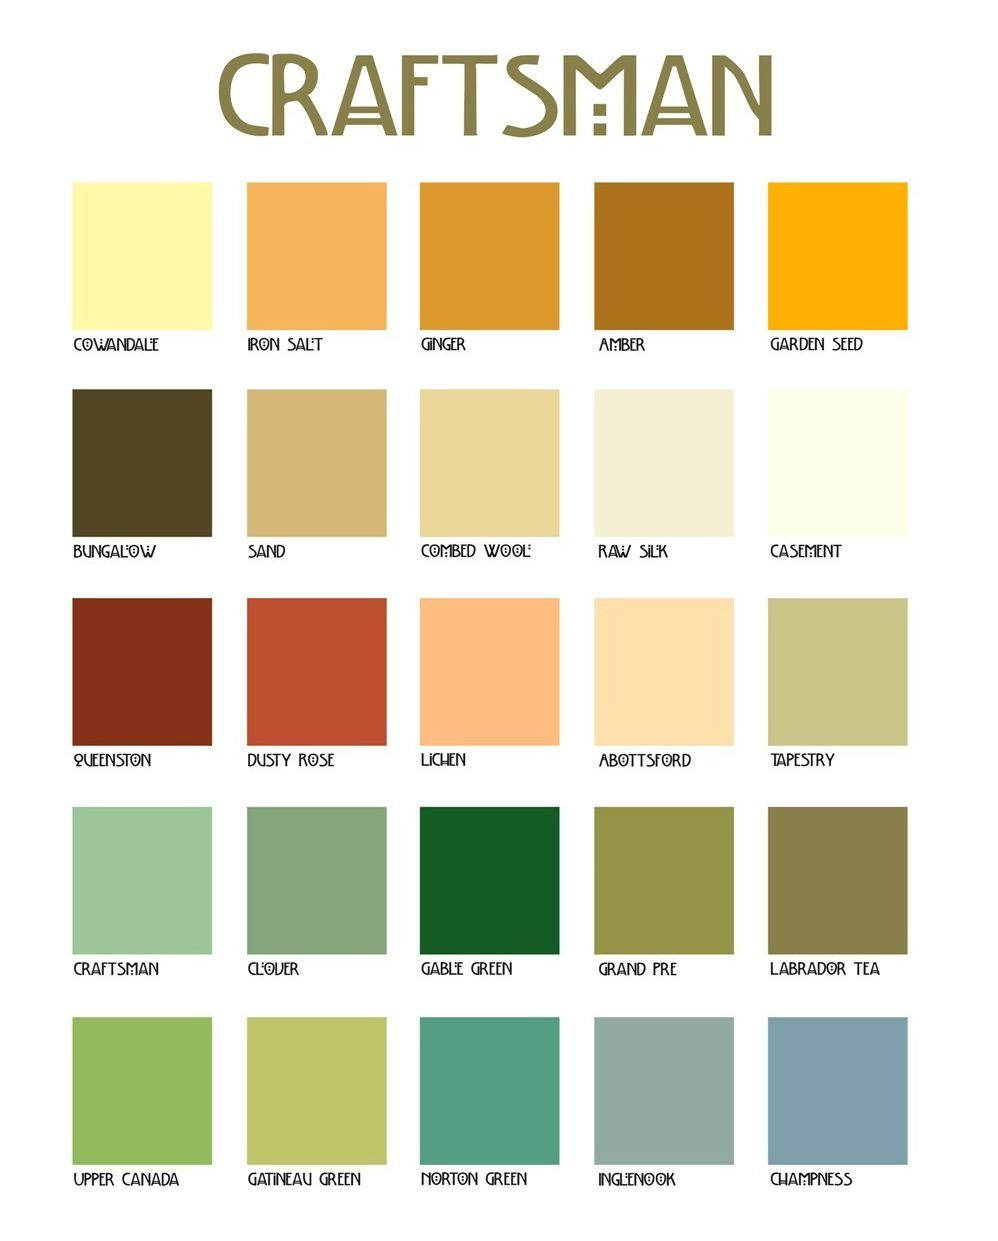 Modern Craftsman Interior Colors : modern, craftsman, interior, colors, Craftsman, Style, Interior, Colors, Painted, Samples, Request,, Colour, 4X…, Interiors,, Mission, Decorating,, Decor